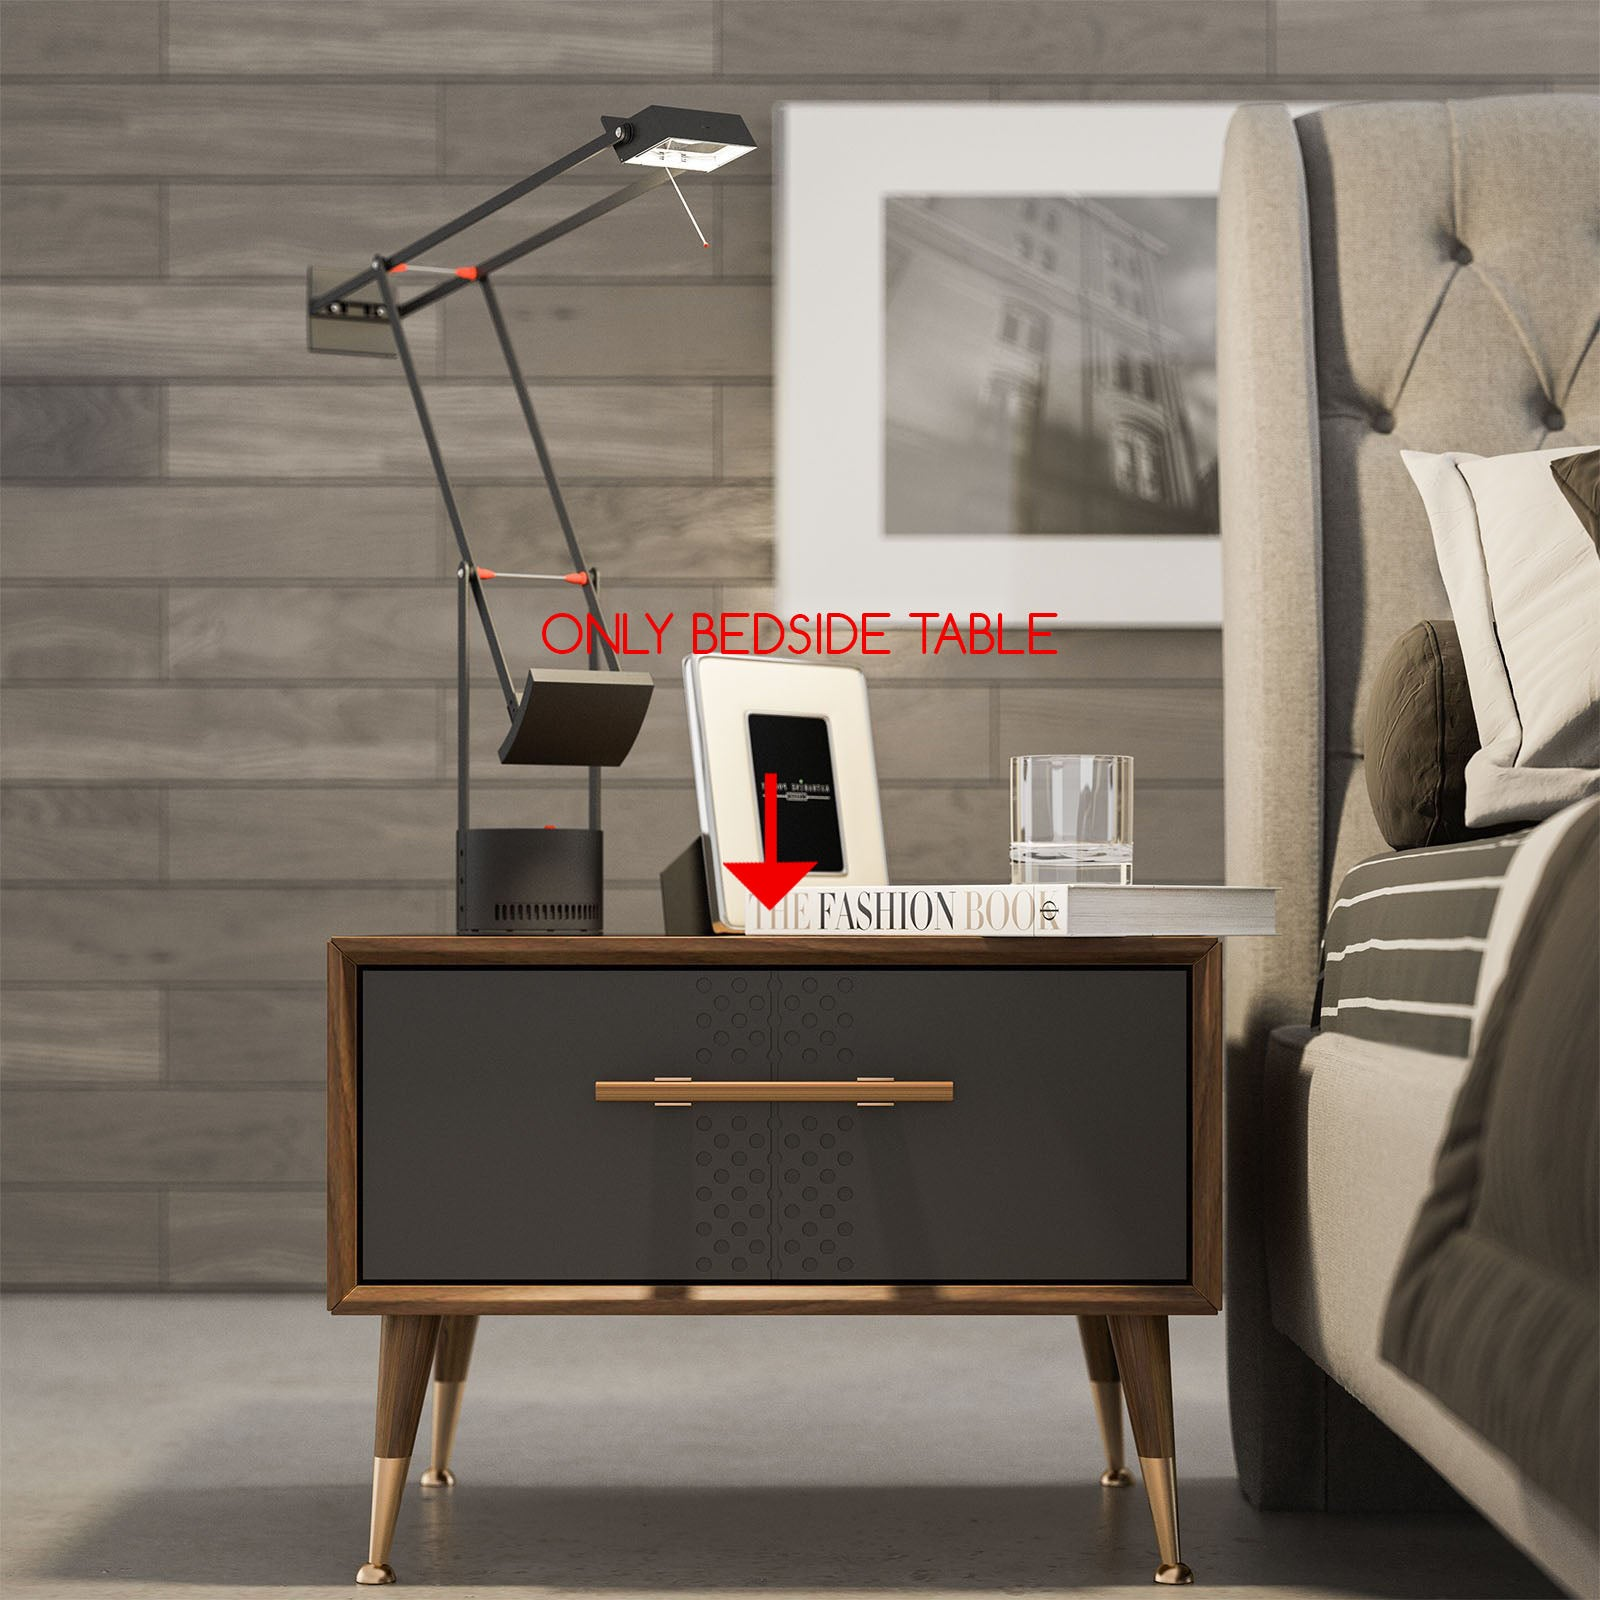 2X Alvin BEDSIDE TABLE  ALVINE001-TABLE -  2X طاولة السرير ألفين - Shop Online Furniture and Home Decor Store in Dubai, UAE at ebarza